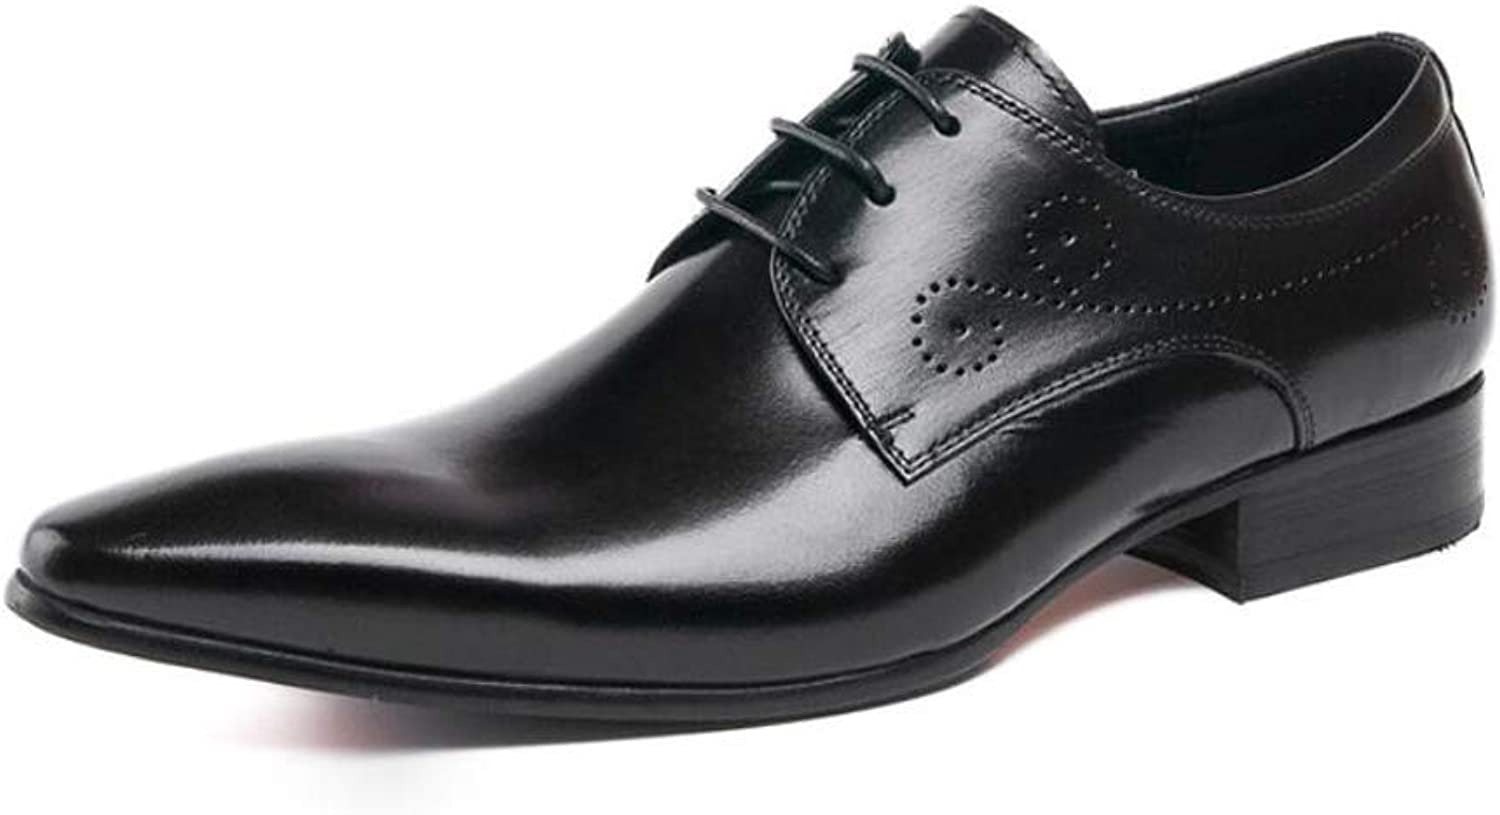 MKJYDM Men's Wear-Resistant Leather shoes Strap British Pointed Men's shoes with Dress shoes Classic Hair Stylist shoes 37-44 Yards Men's Leather shoes (color   Black, Size   41 EU)